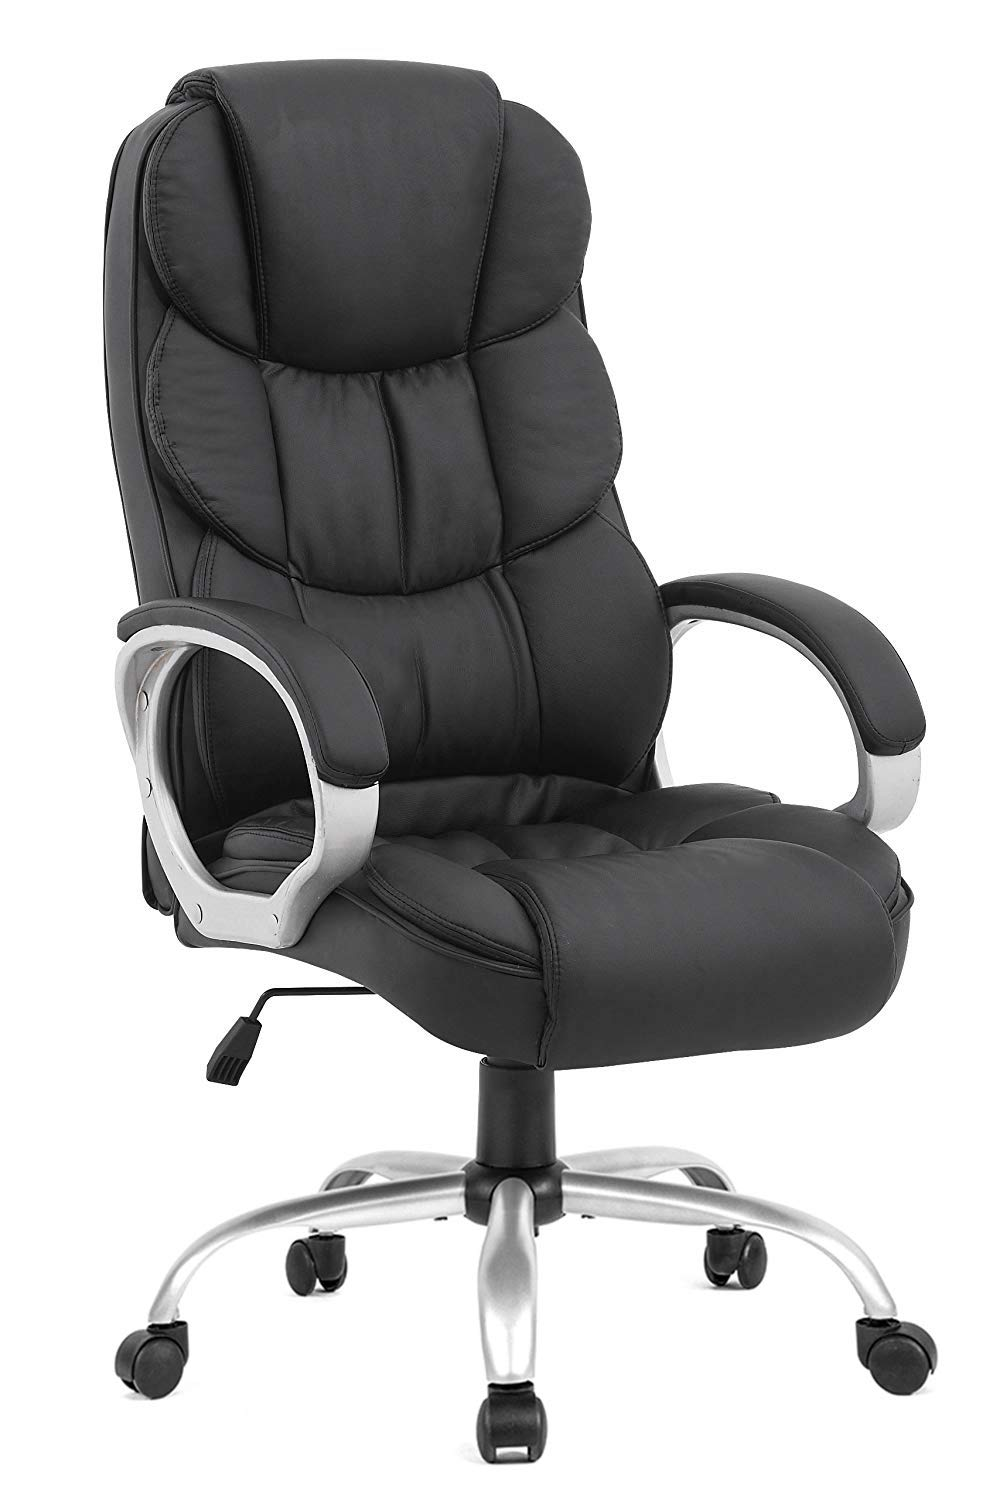 BestOffice Office Chair Cheap Desk Chair Ergonomic Computer Chair with Lumbar Support Arms Headrest PU Leather Modern Rolling Swivel Executive Chair for Back Pain Women Men Adults,Black by BestOffice